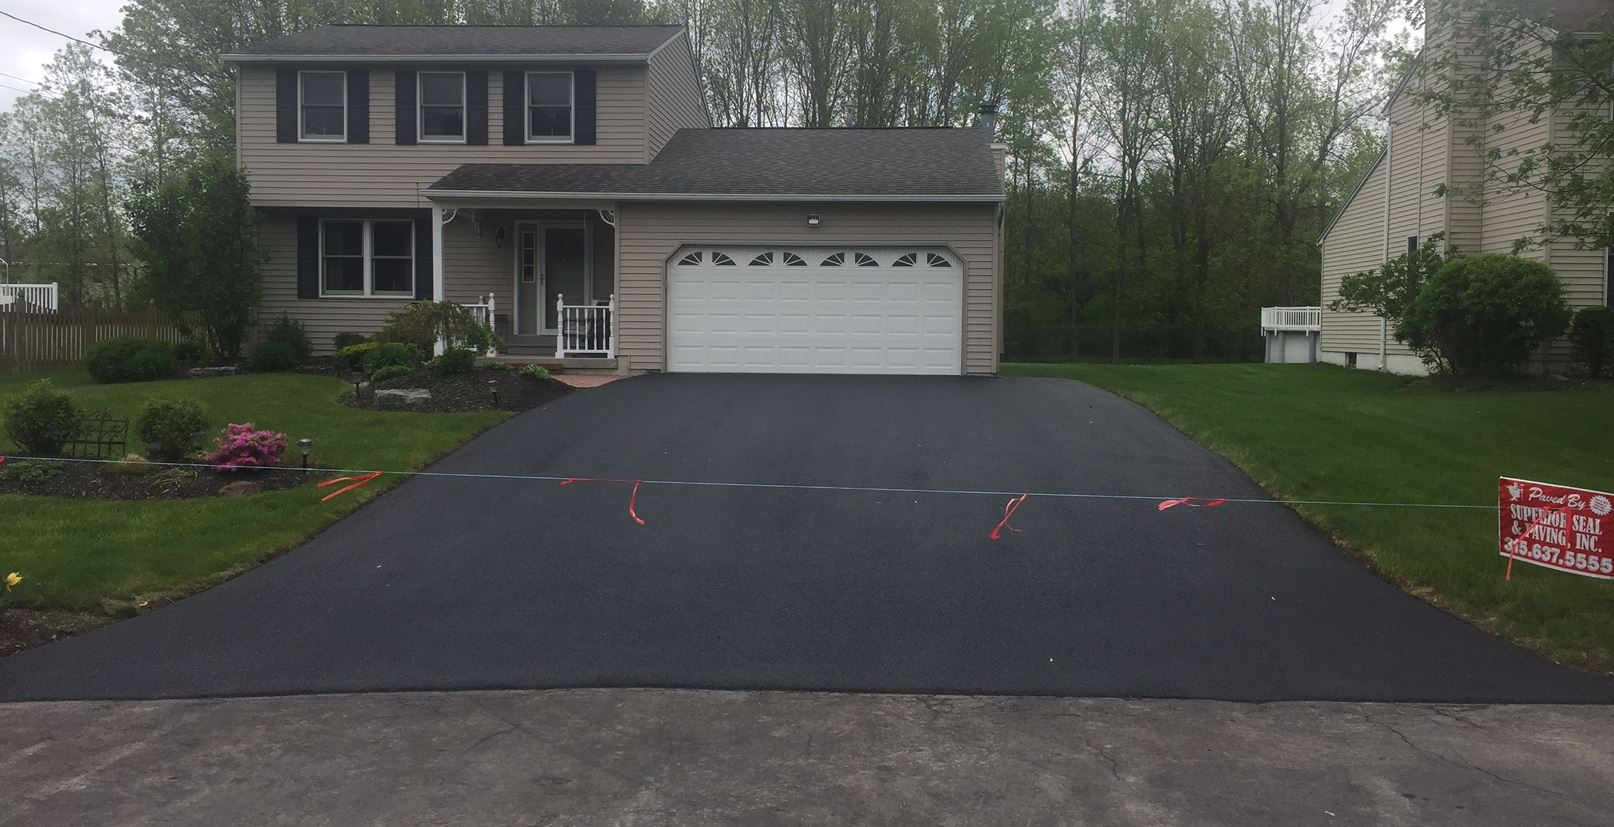 pave topcoat superior seal paving